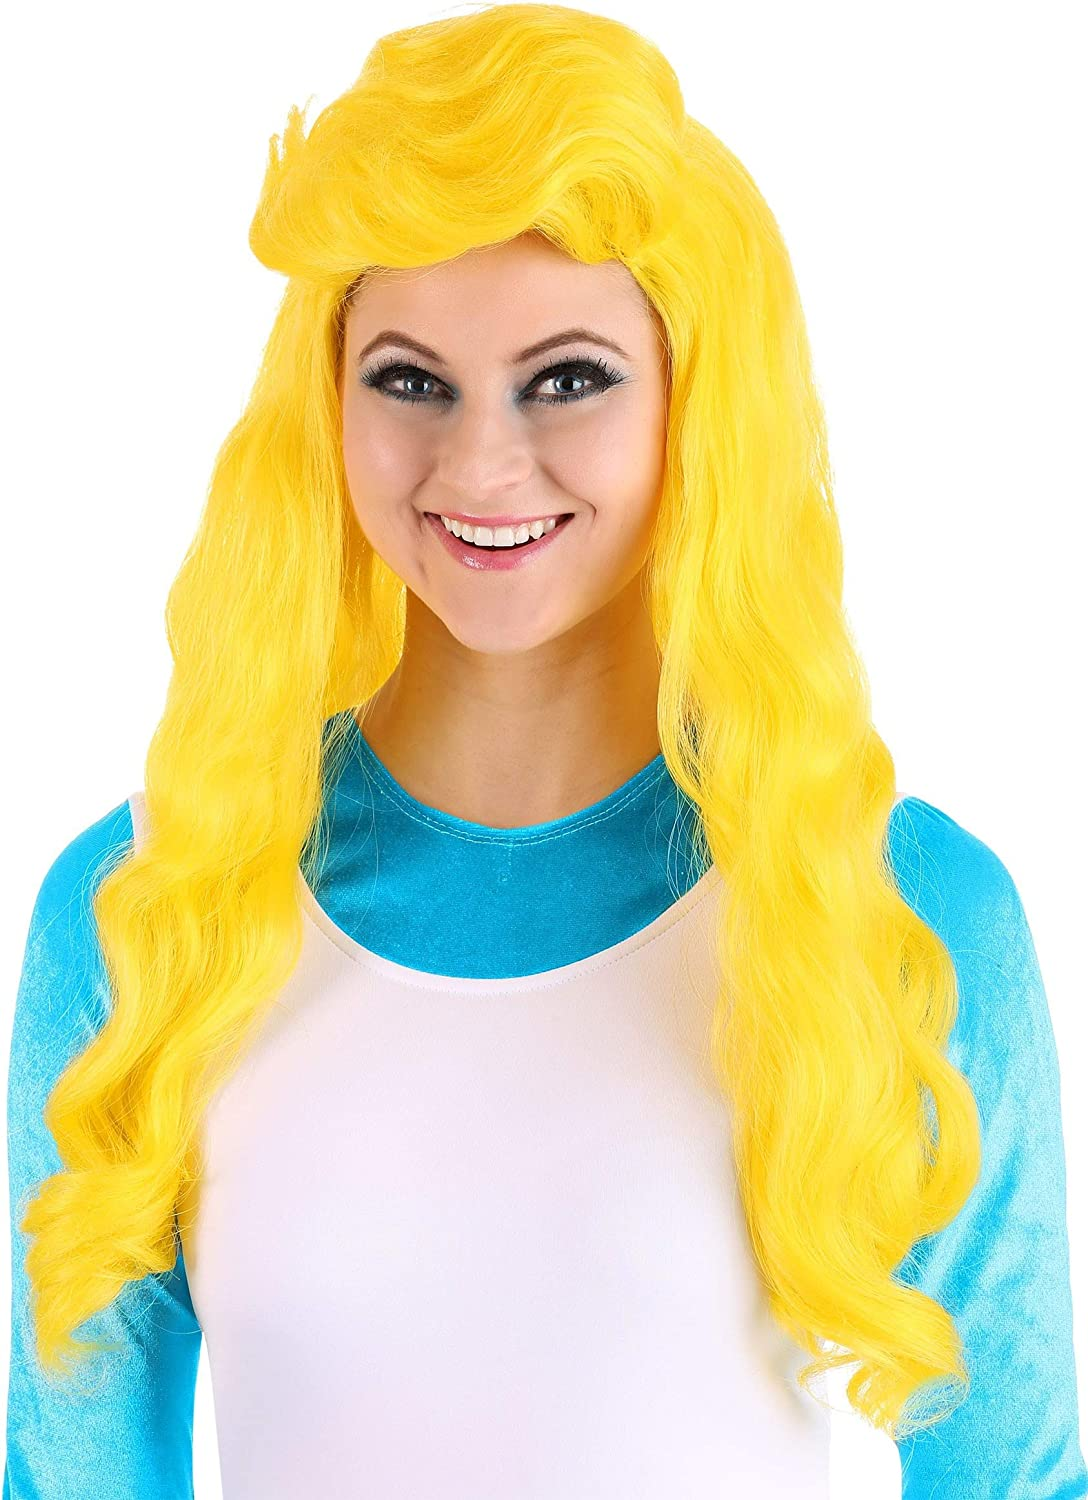 Fun Costumes Womens Smurfette Wig from The Smurfs Standard